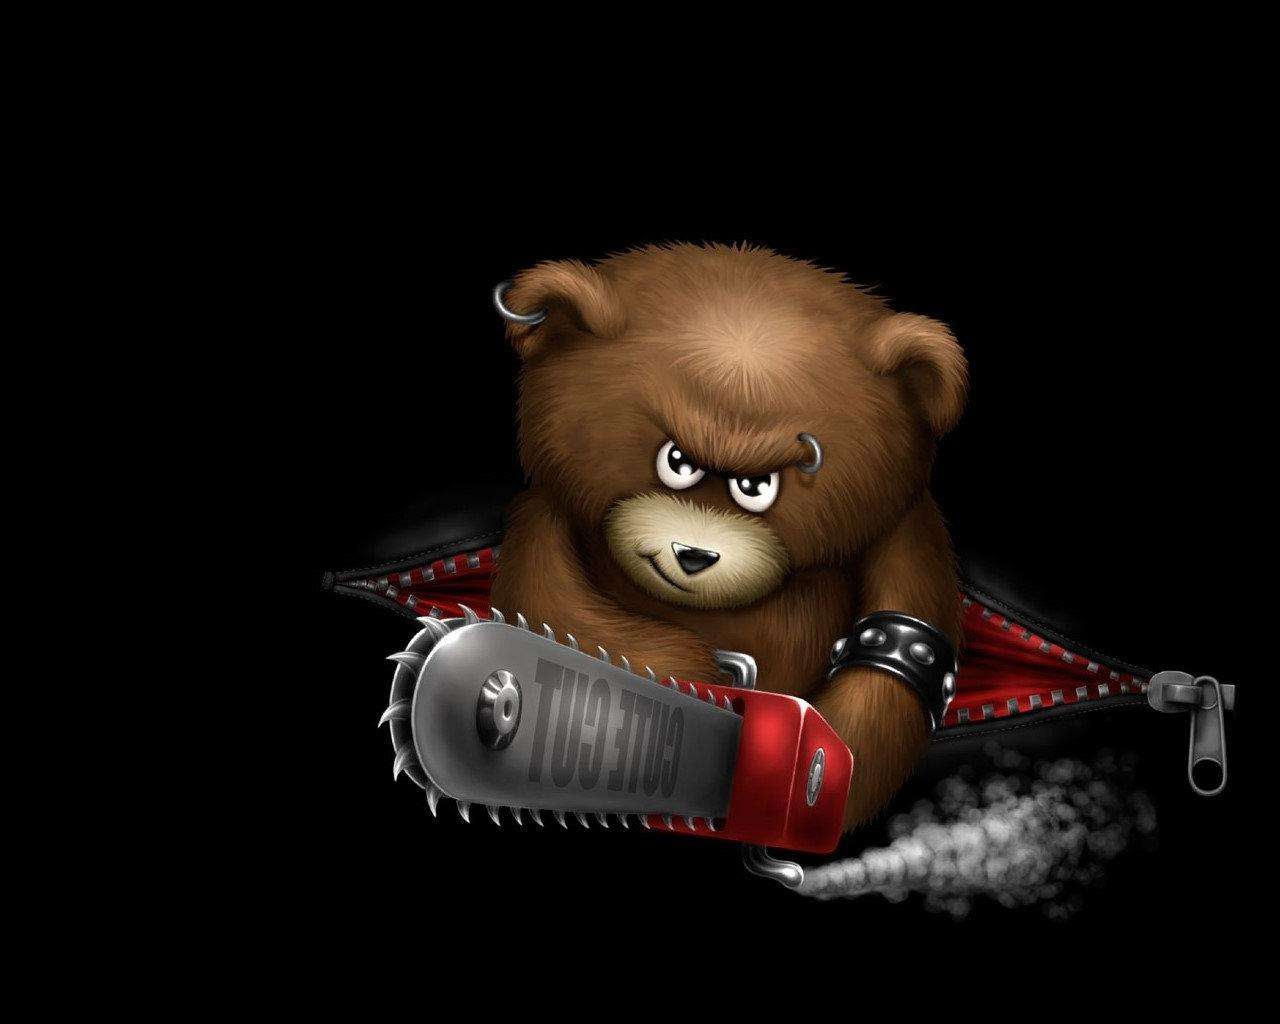 Funny Angry Bear Wallpaper